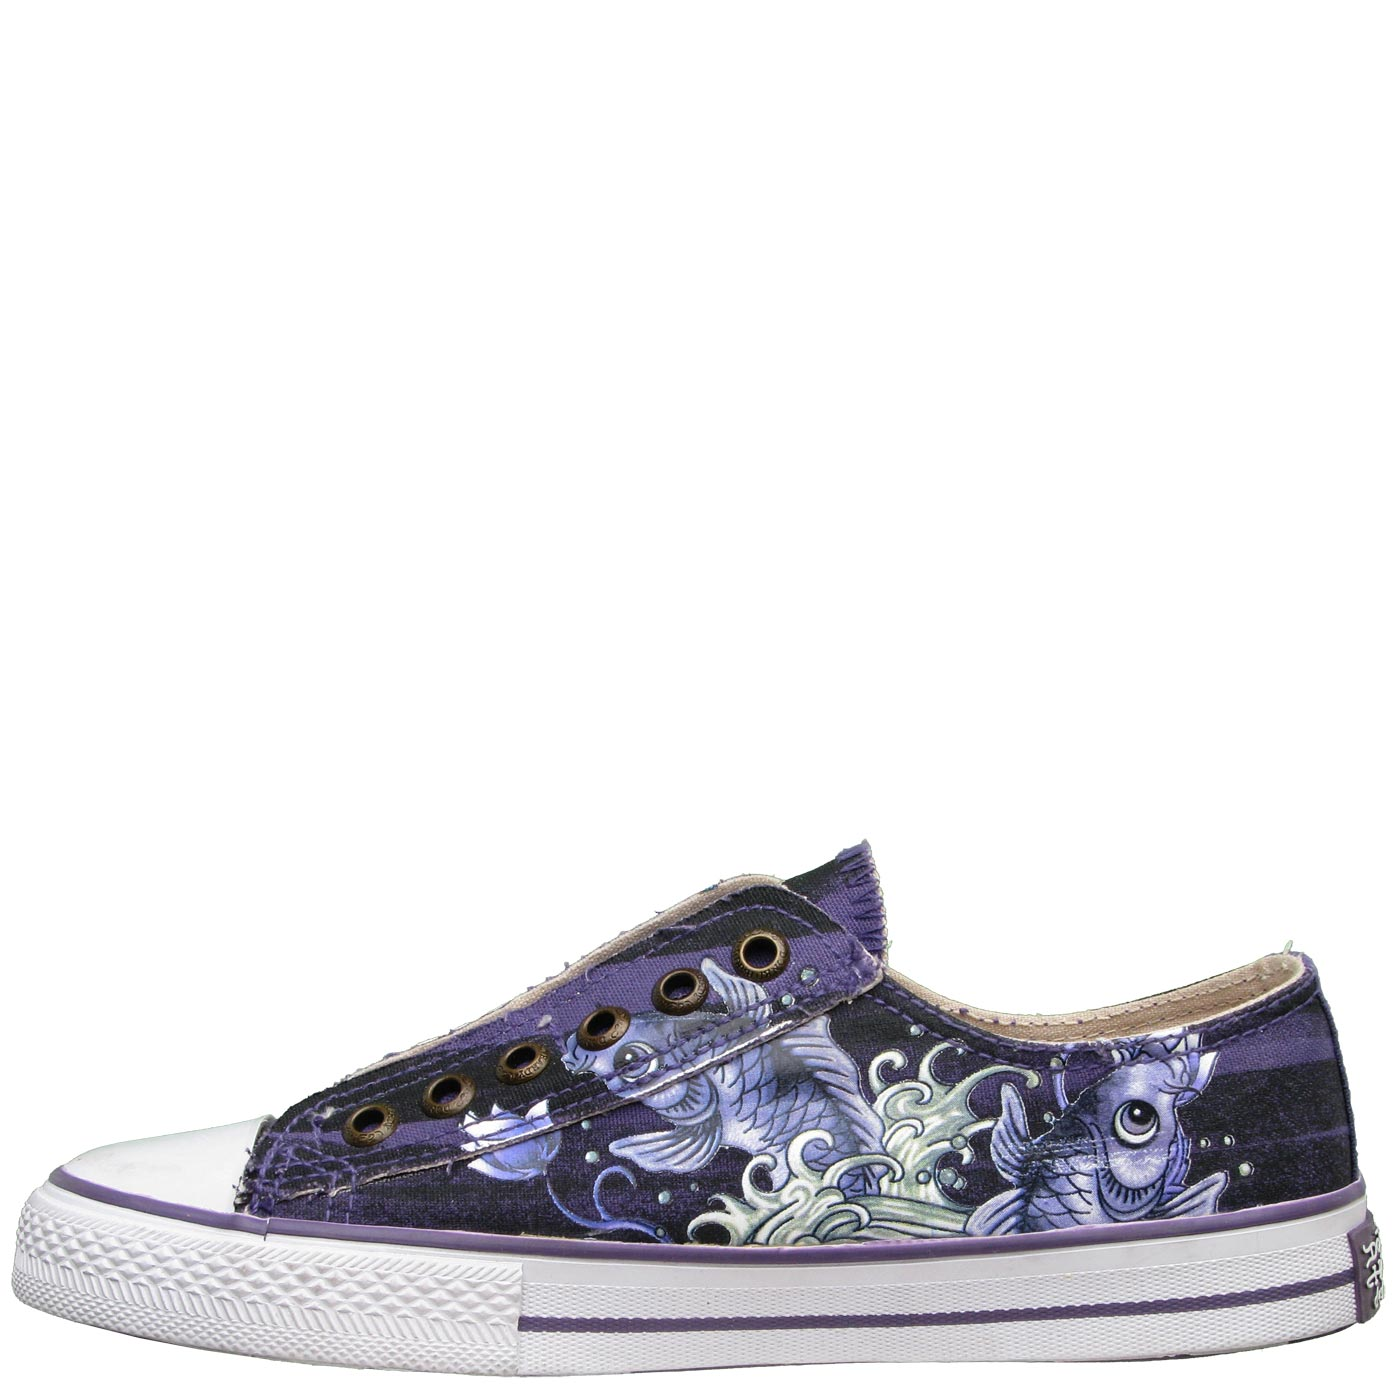 Ed Hardy Lowrise Serrano Shoe for Women - Purple